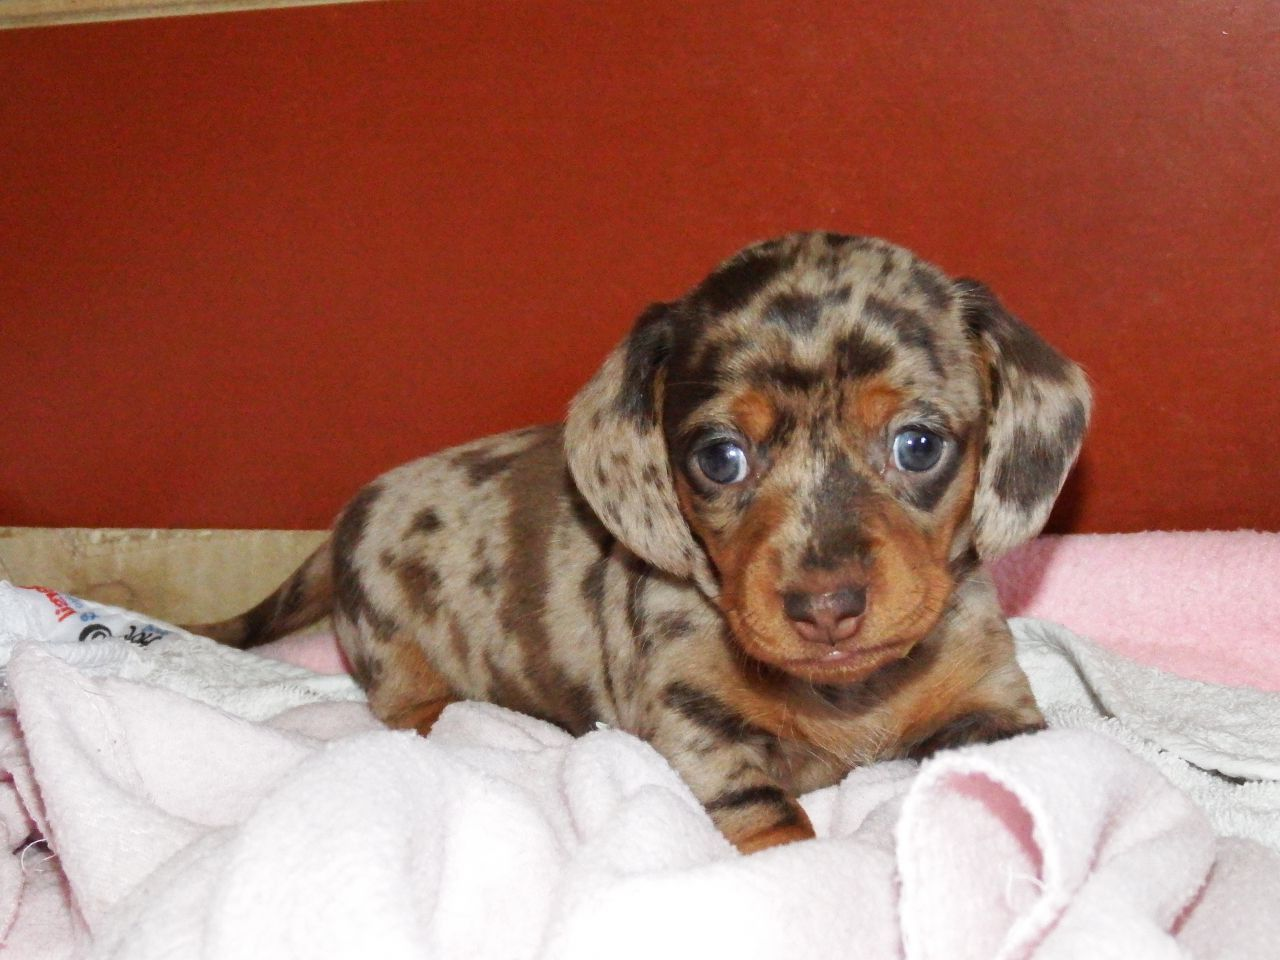 Chocolate Dapple Miniature Dachshund Puppies For Sale Dachshund Puppies For Sale Dachshund Puppies Dachshund Puppy Miniature